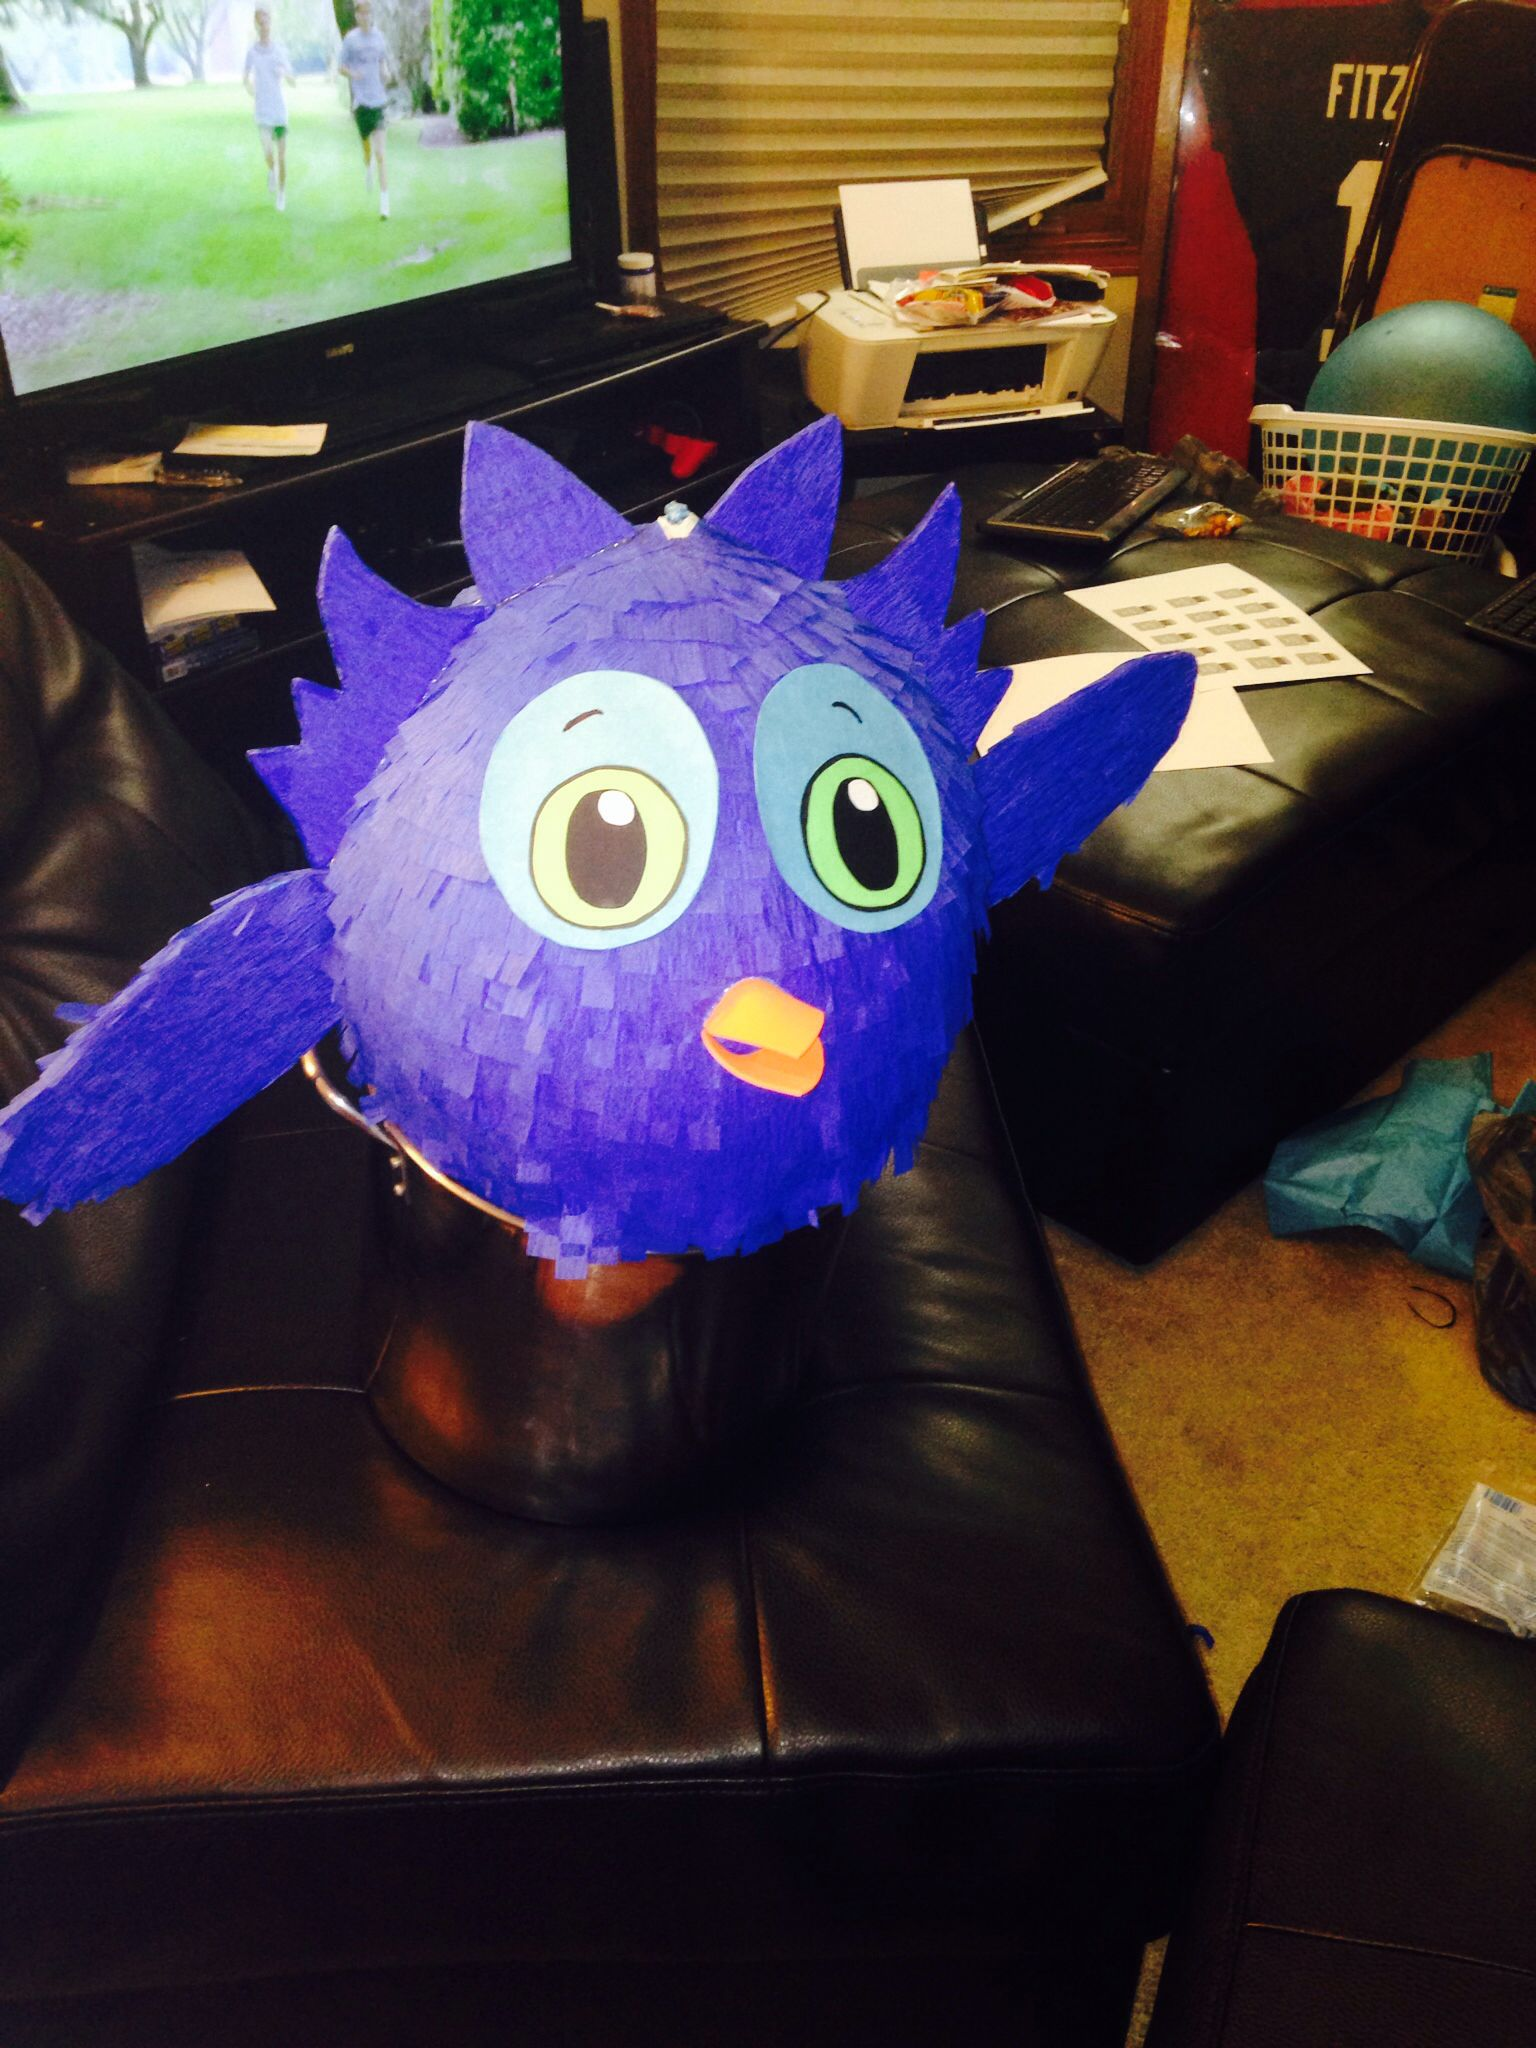 O the owl piñata made out of paper mâché.